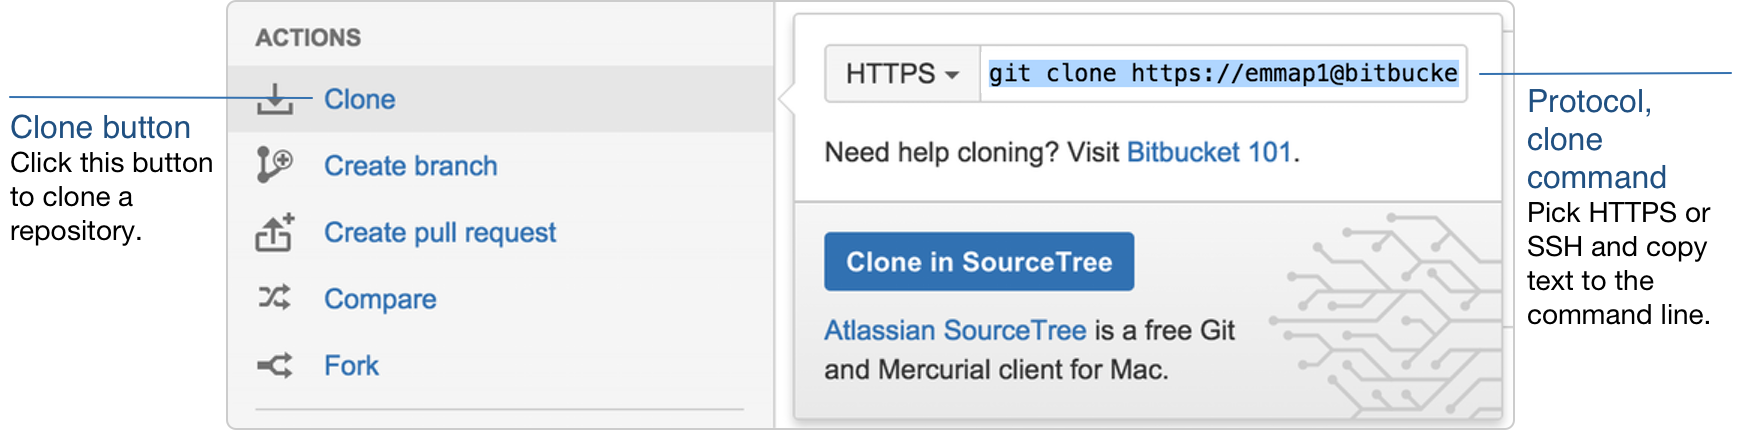 https://confluence.atlassian.com/bitbucket/files/304578655/746520869/2/1434639735558/git+clone.png